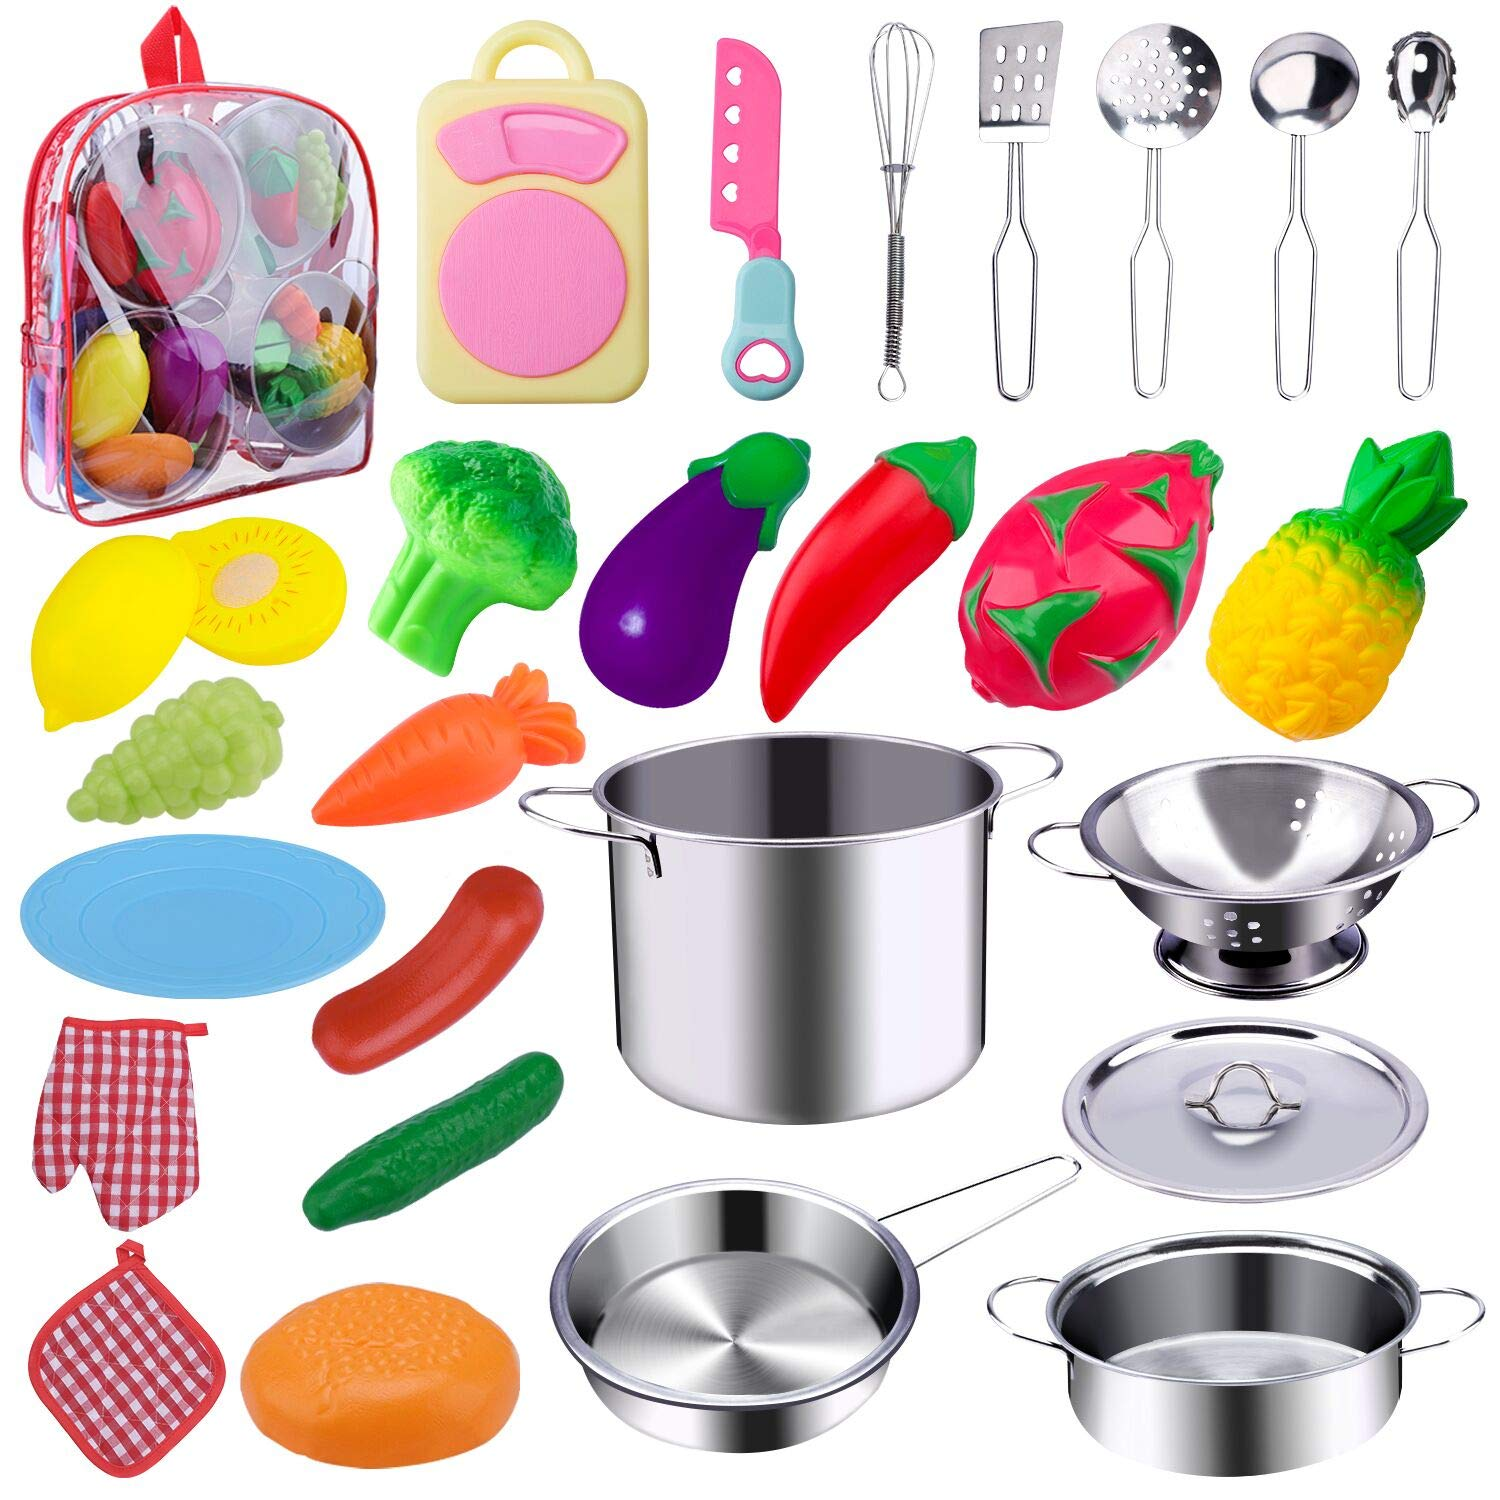 WAASII 26 Pcs Kitchen Pretend Play Accessories Toys with Stainless Steel Cookware Pots and Pans Set,Cooking Utensils and Healthy Cutting Play Food Set Gifts Learning Tool for Kids Girls Boys by WAASII